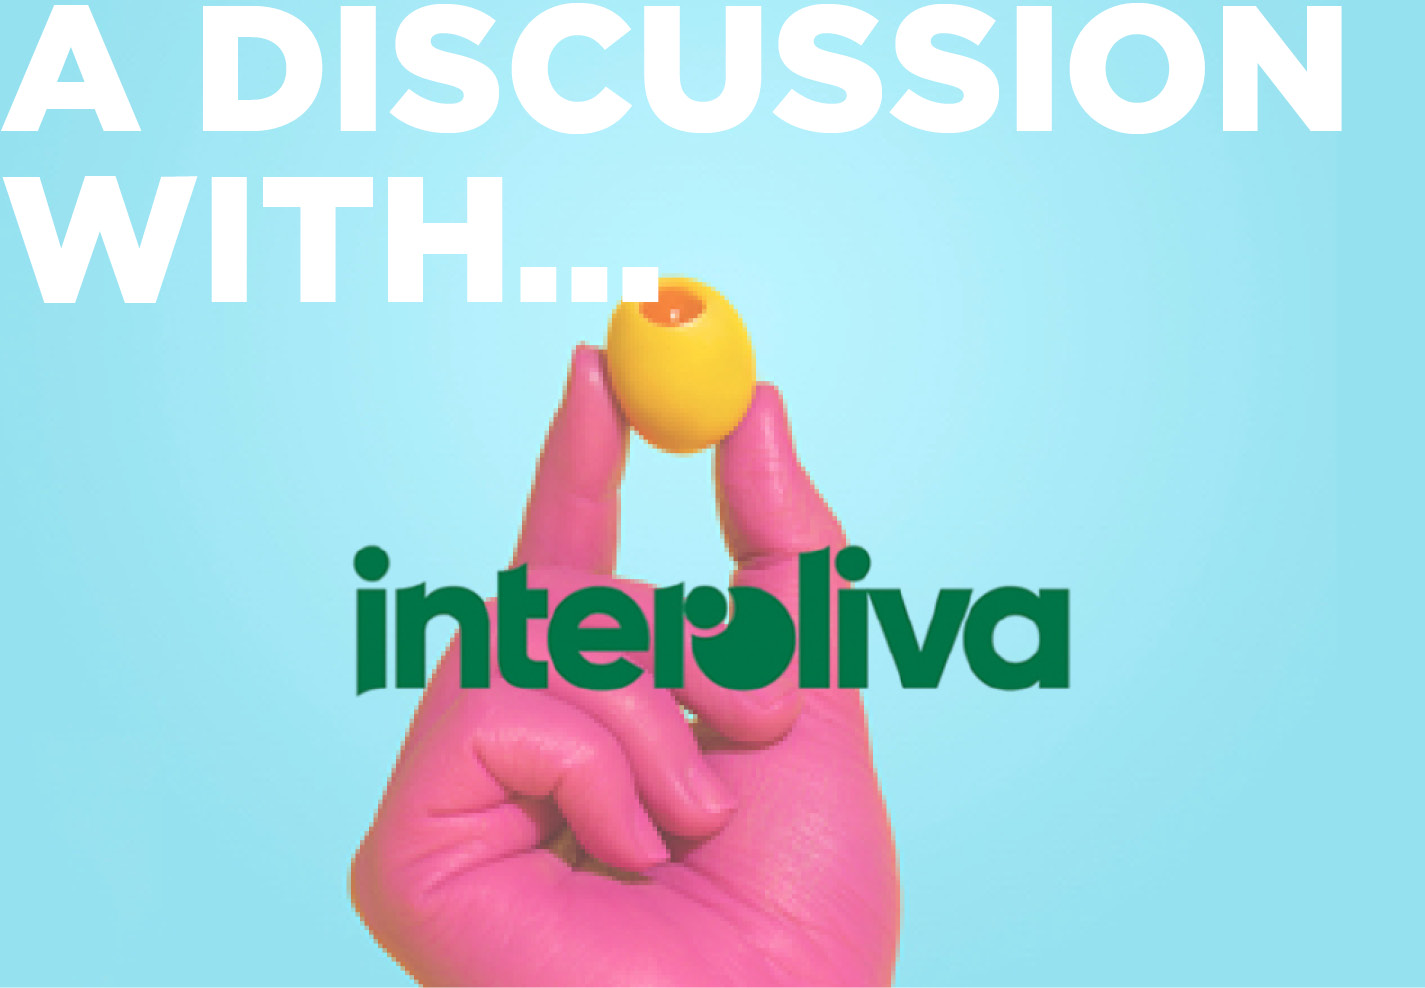 A discussion with Interoliva